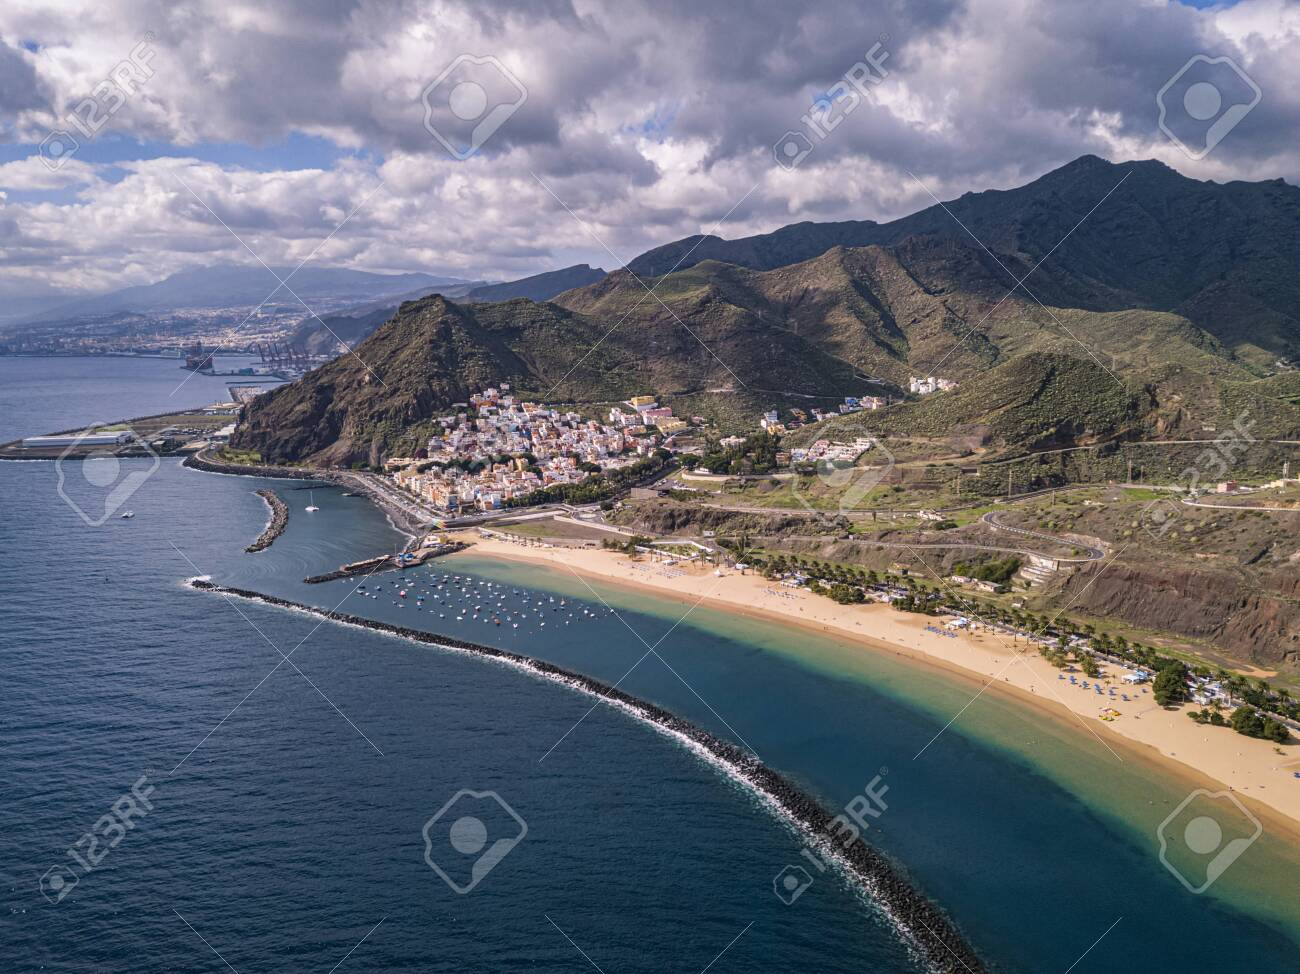 Aerial view of the famous white sand beach Playa de Las Teresitas with scenic San Andres village. Tenerife, Canary Islands, Spain - 137602605